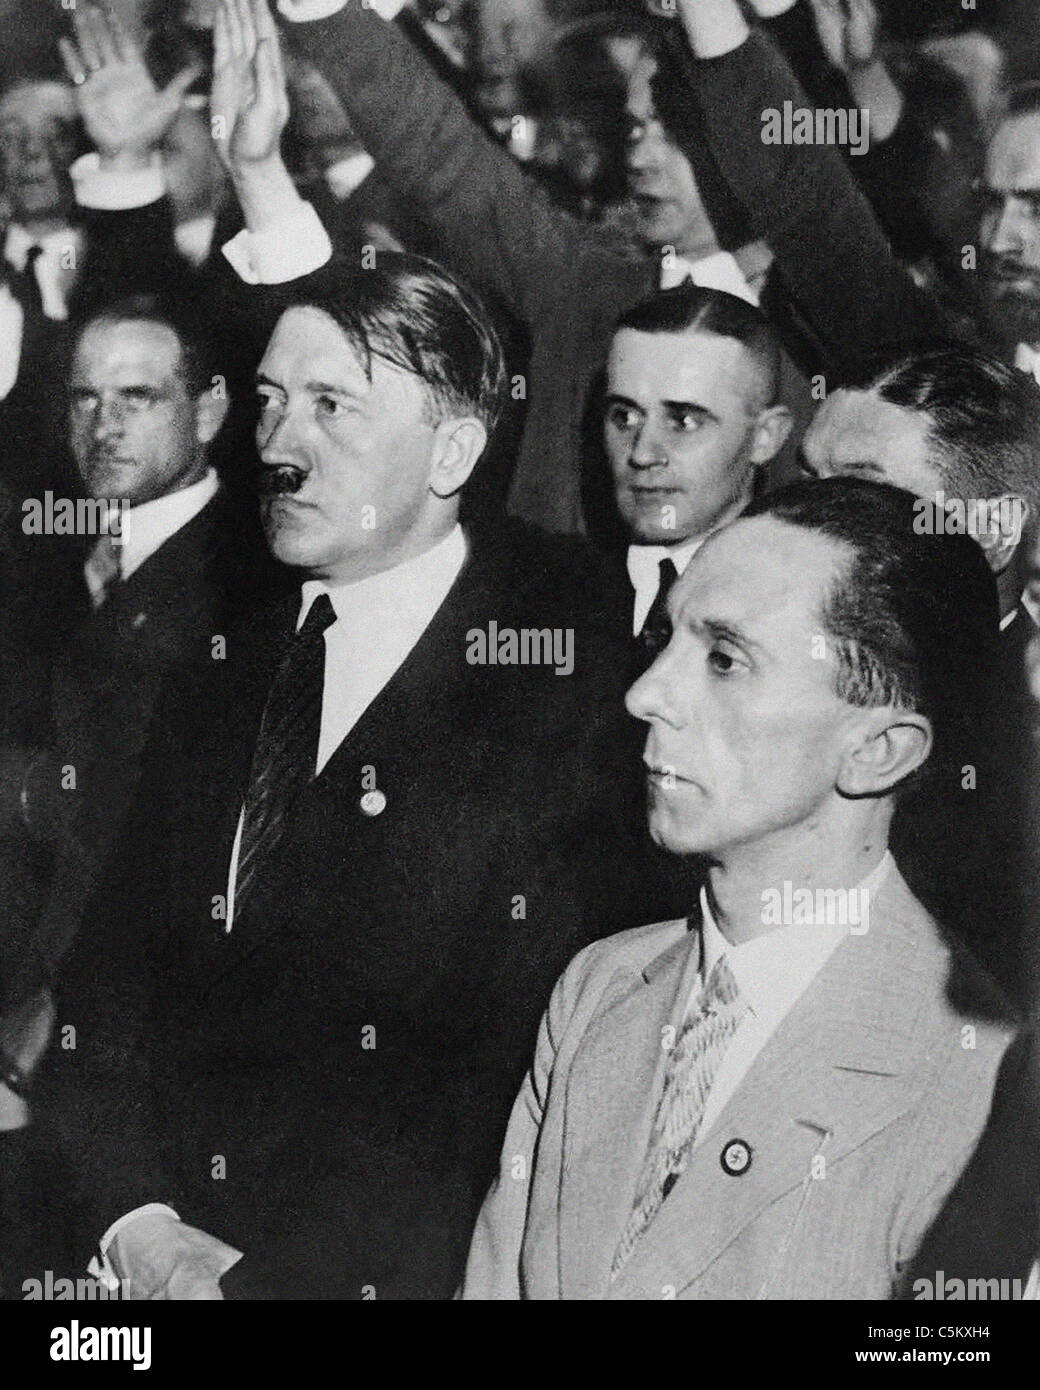 Joseph Goebbels German wartime Minister of Propaganda with Adolf Hitler from the archives of Press Portrait Service Stock Photo